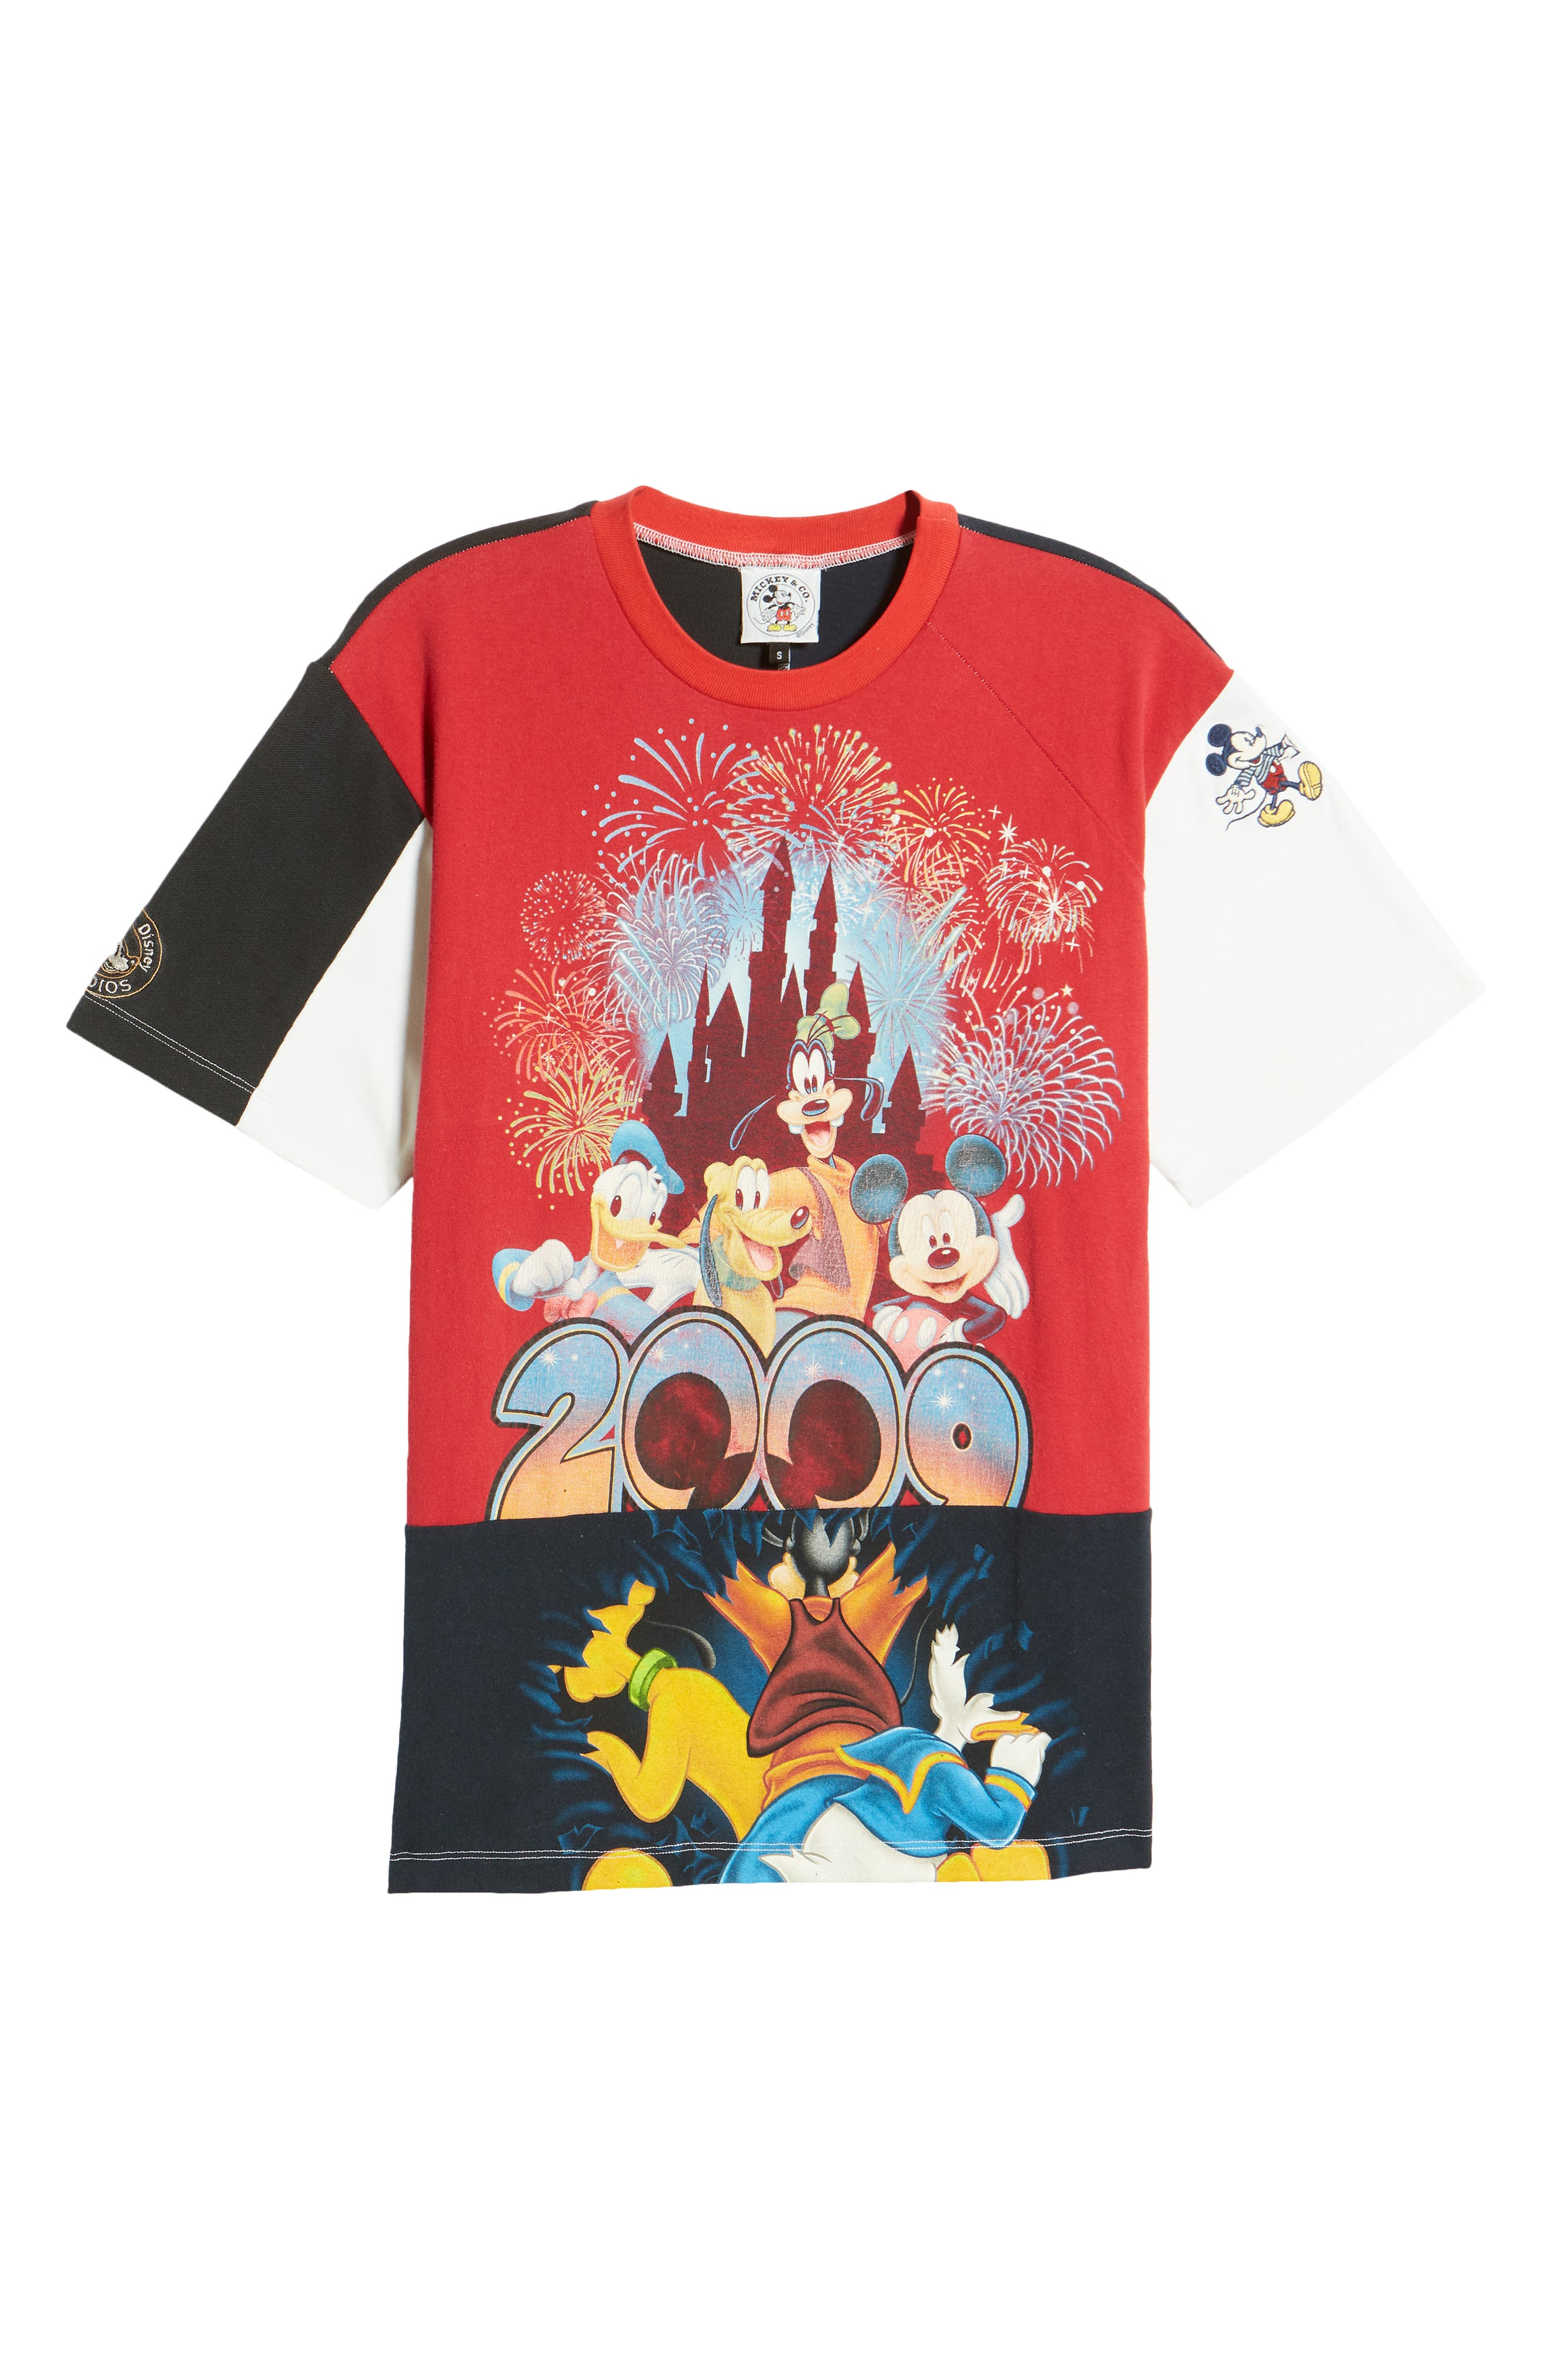 Unisex Upcycled 2009 Mickey & Friends Patchwork Graphic Tee